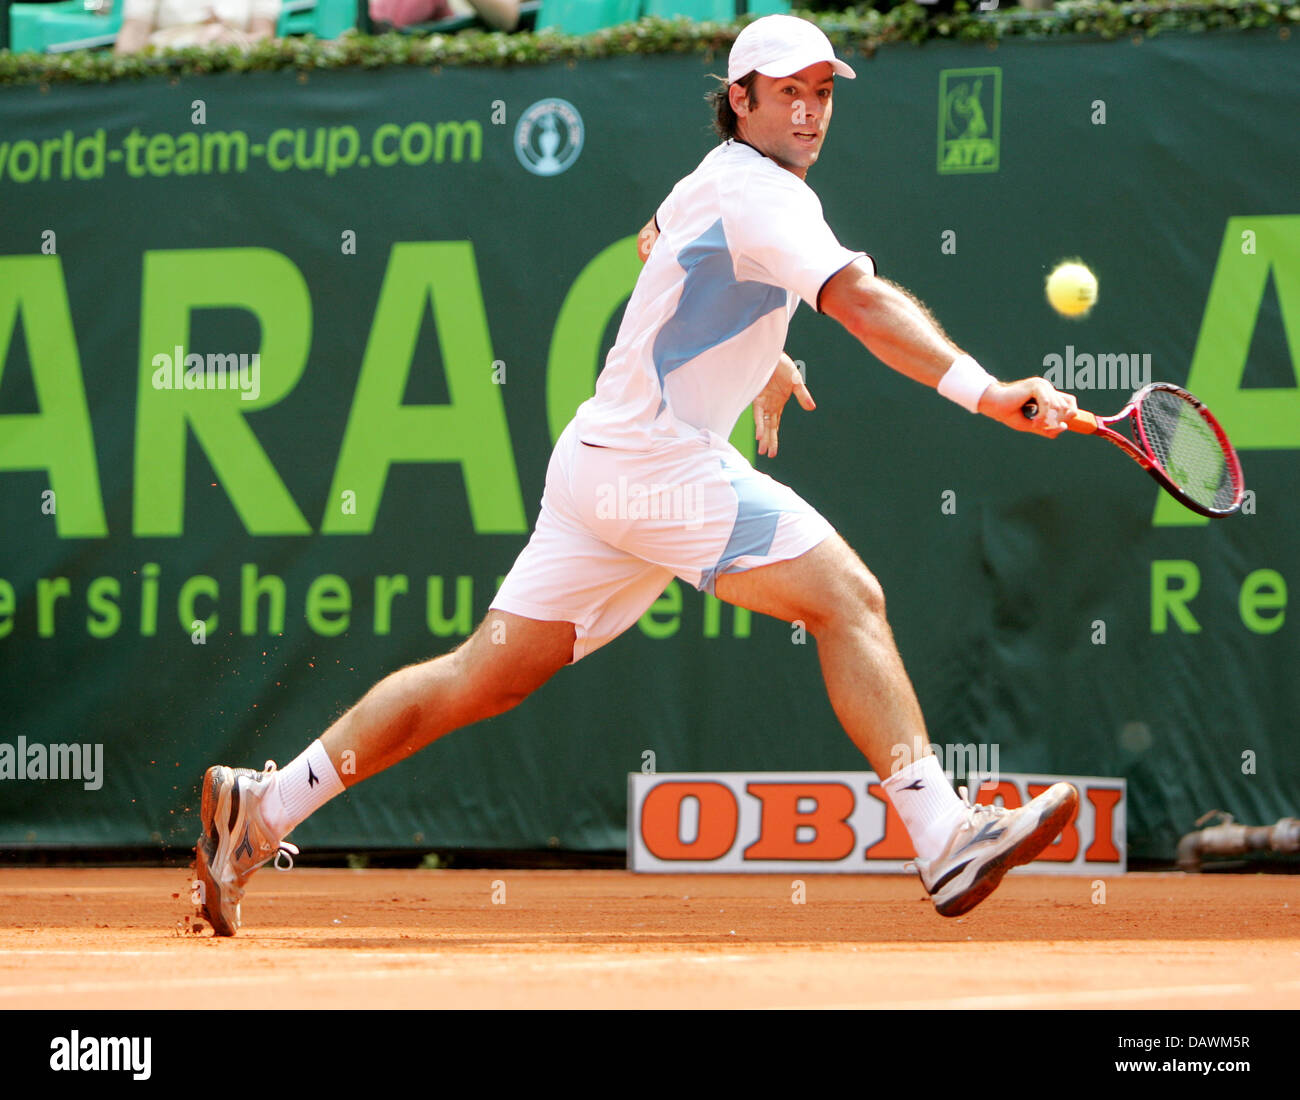 Argentine tennis pro Agustin Calleri stretches to hit a backhand during his World Team Cup match against US James - Stock Image